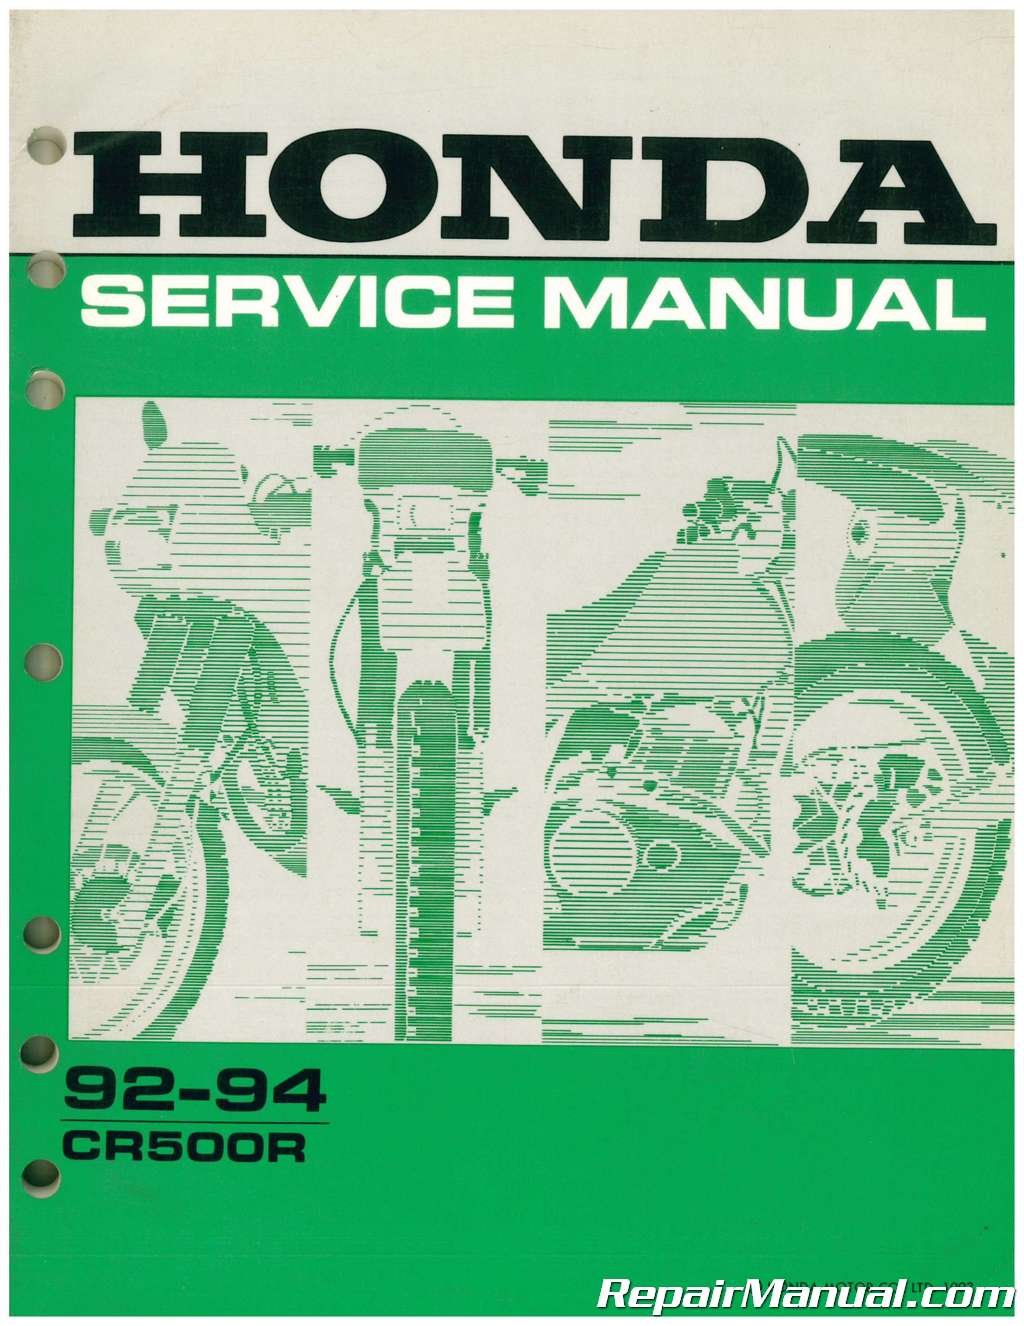 Used 19921994 Honda    CR500R    Service Manual